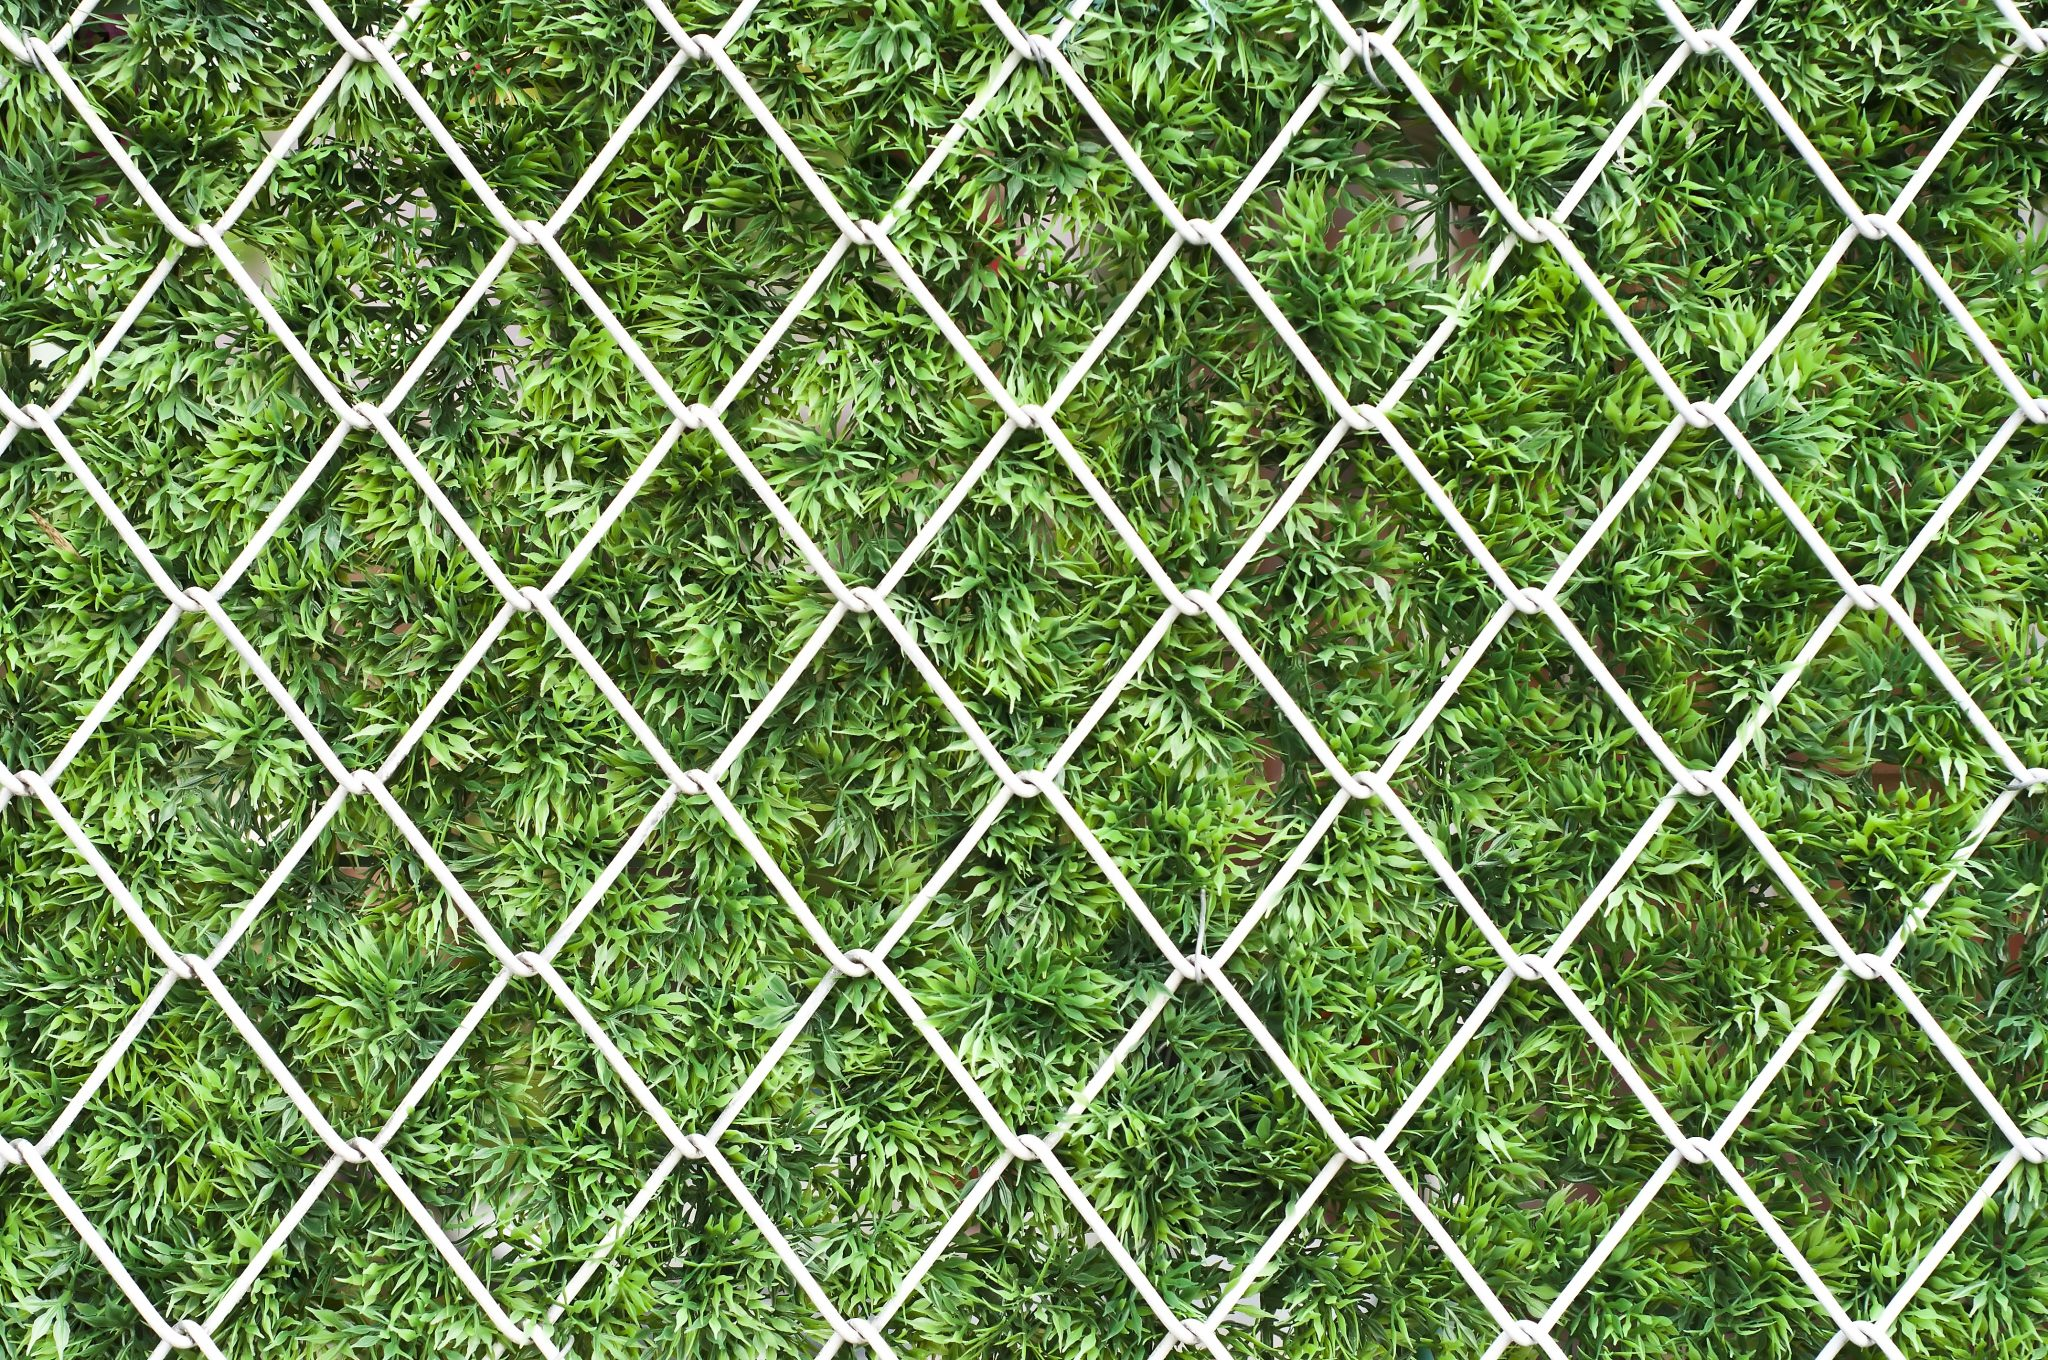 Improve Privacy - Okanagan Fences | Quality Chain Link Fencing